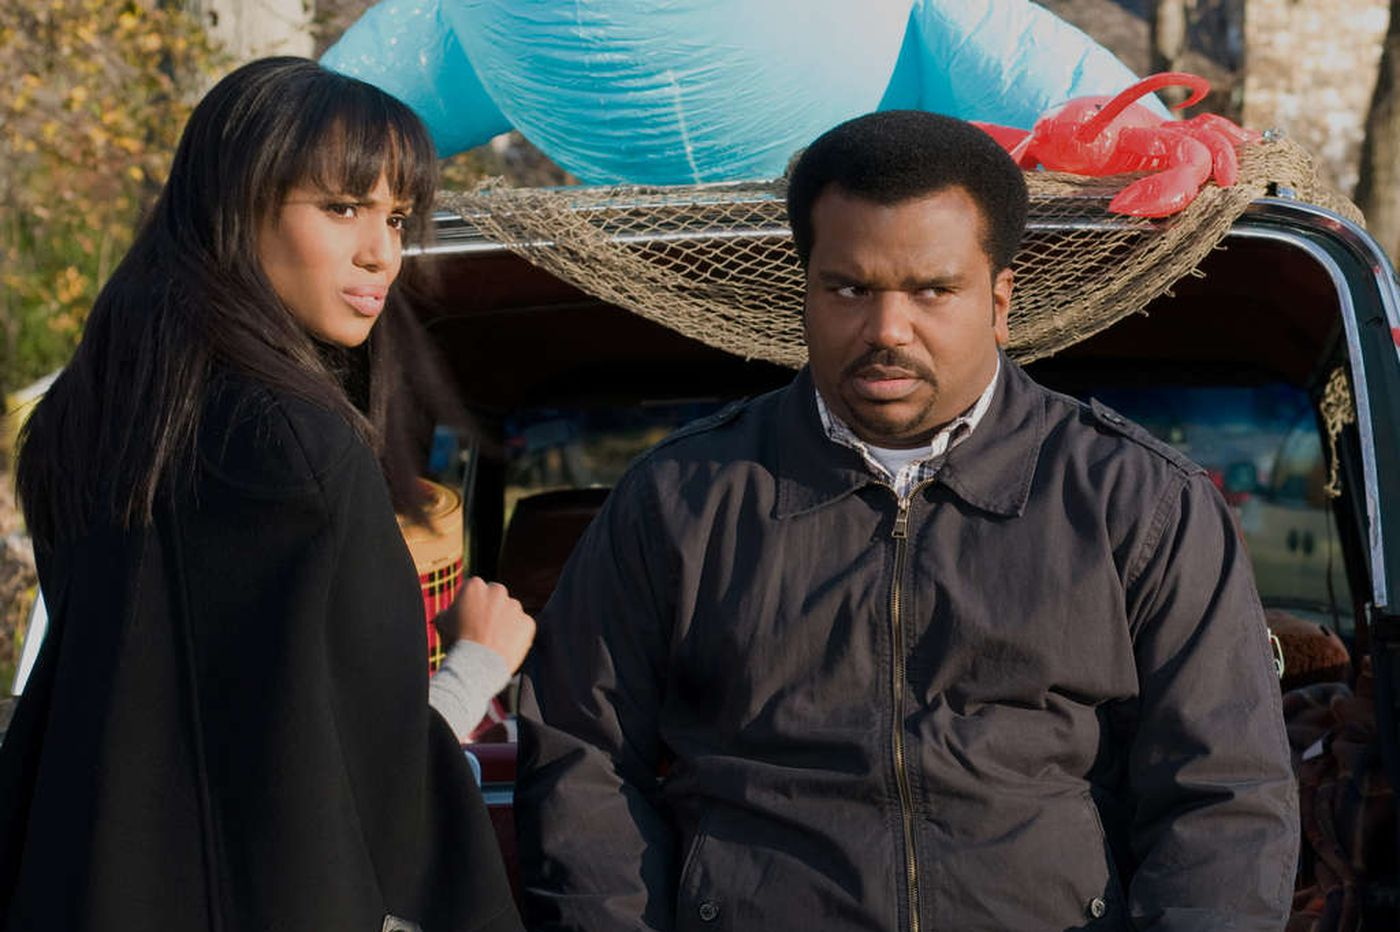 On Movies: Robinson tackles his first lead role in 'Peeples'